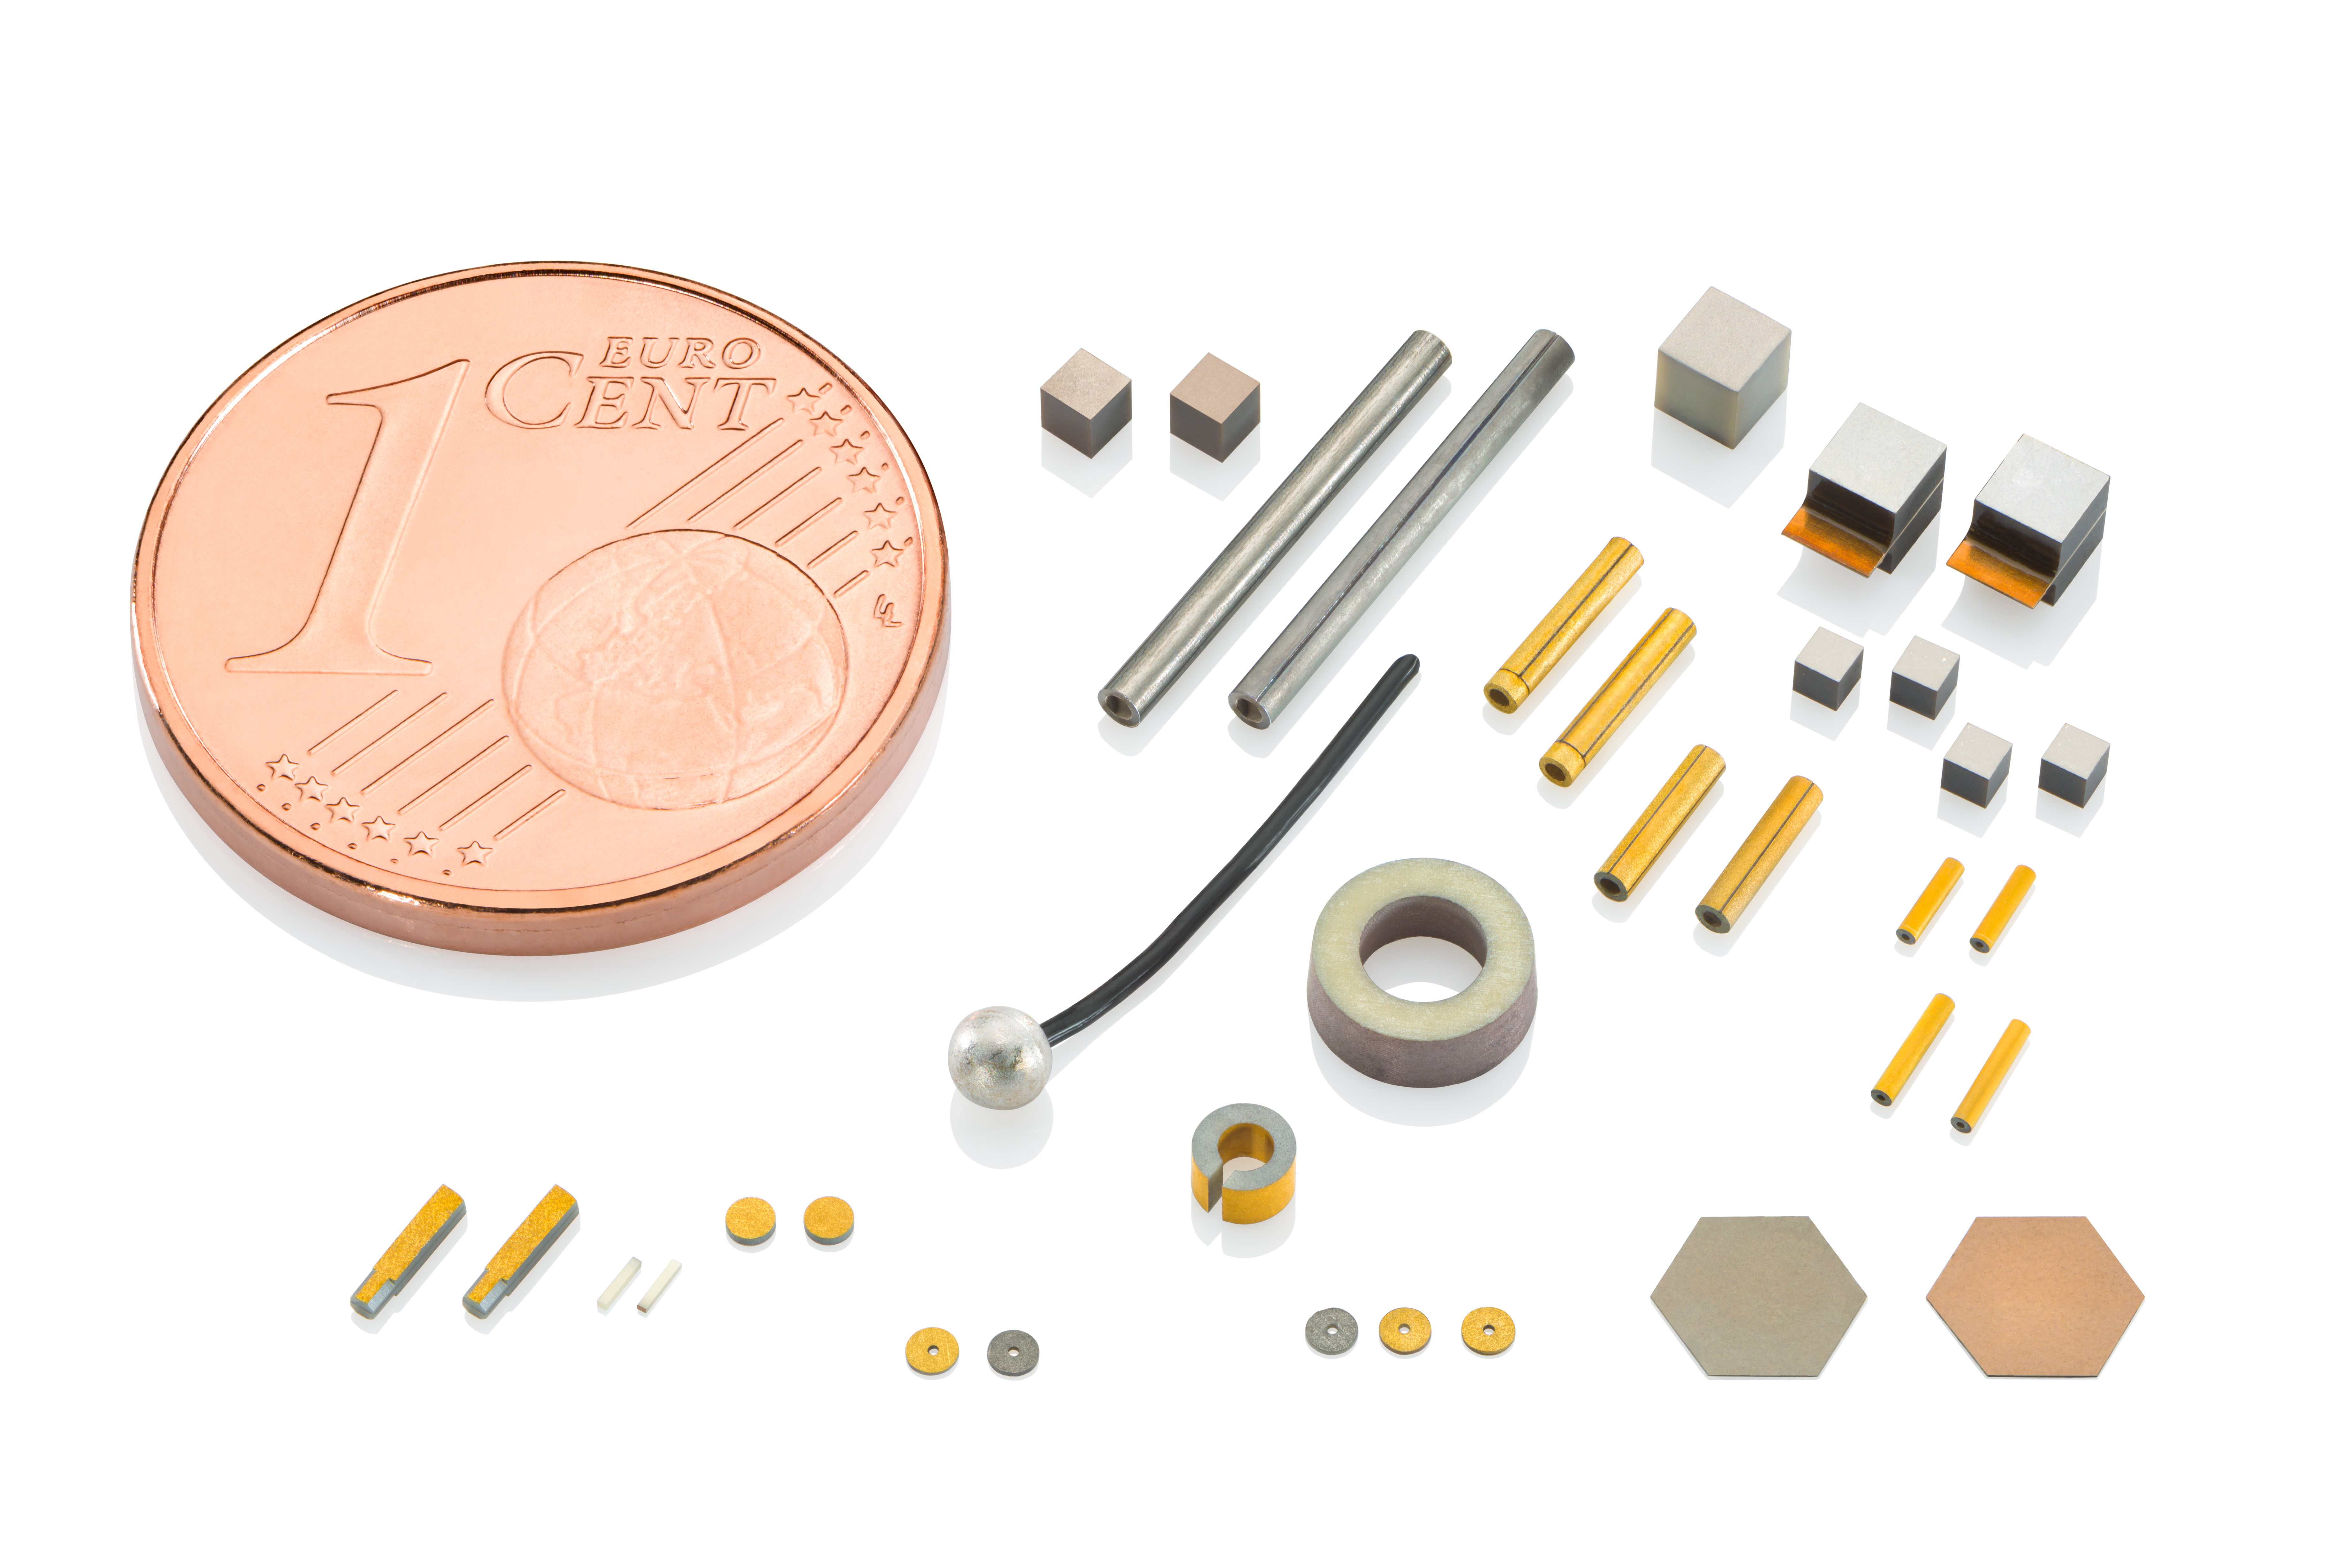 Miniaturized Piezo Ceramics You Need To Know About Piezoelectric Ultrasonic Transducer Circuit